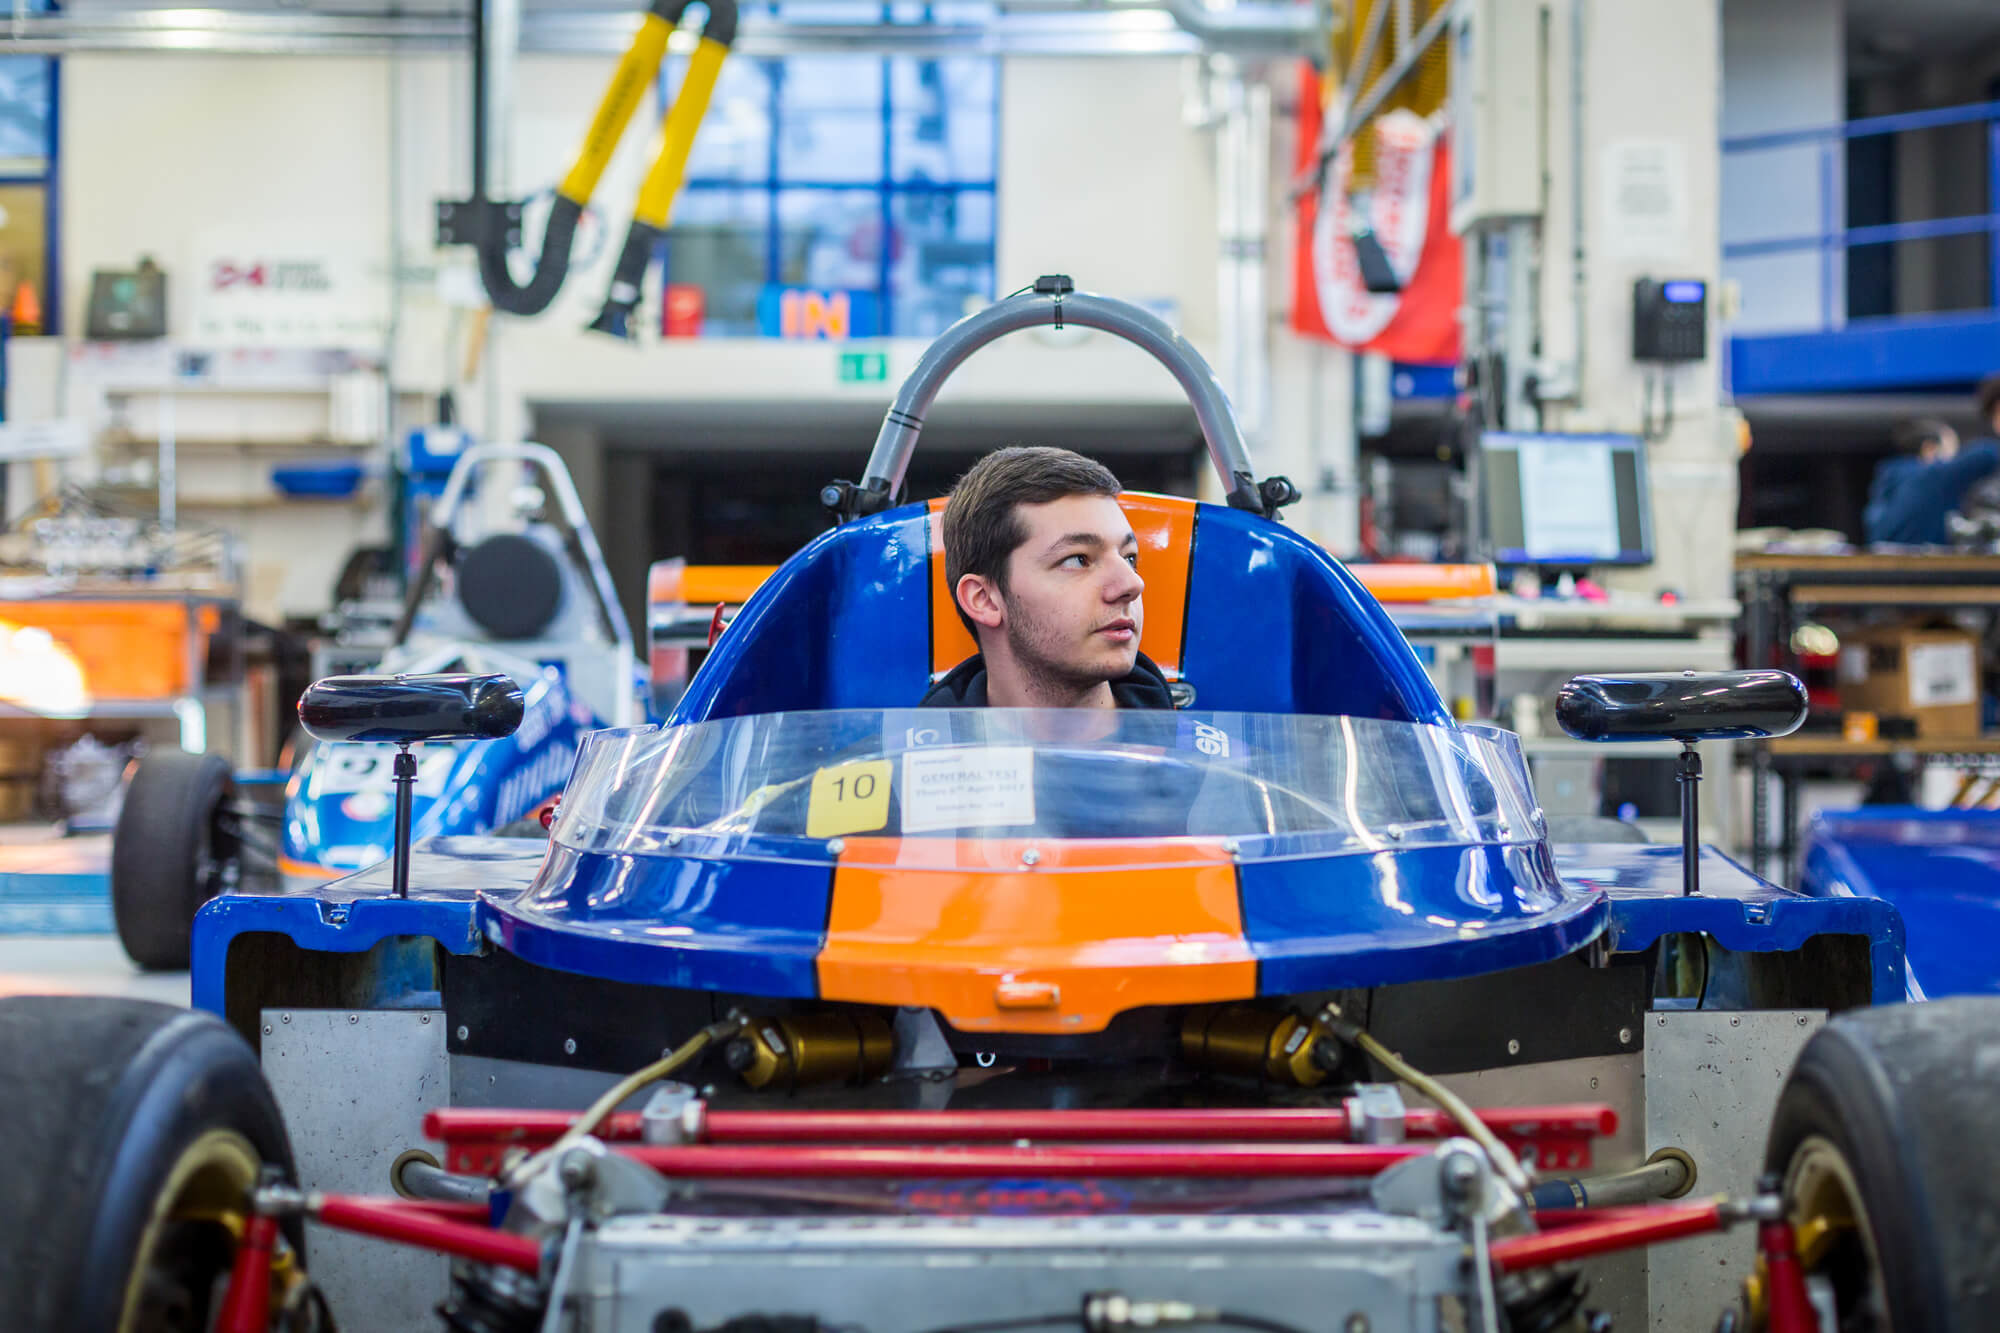 A student sat in the student car in the motorsport workshop